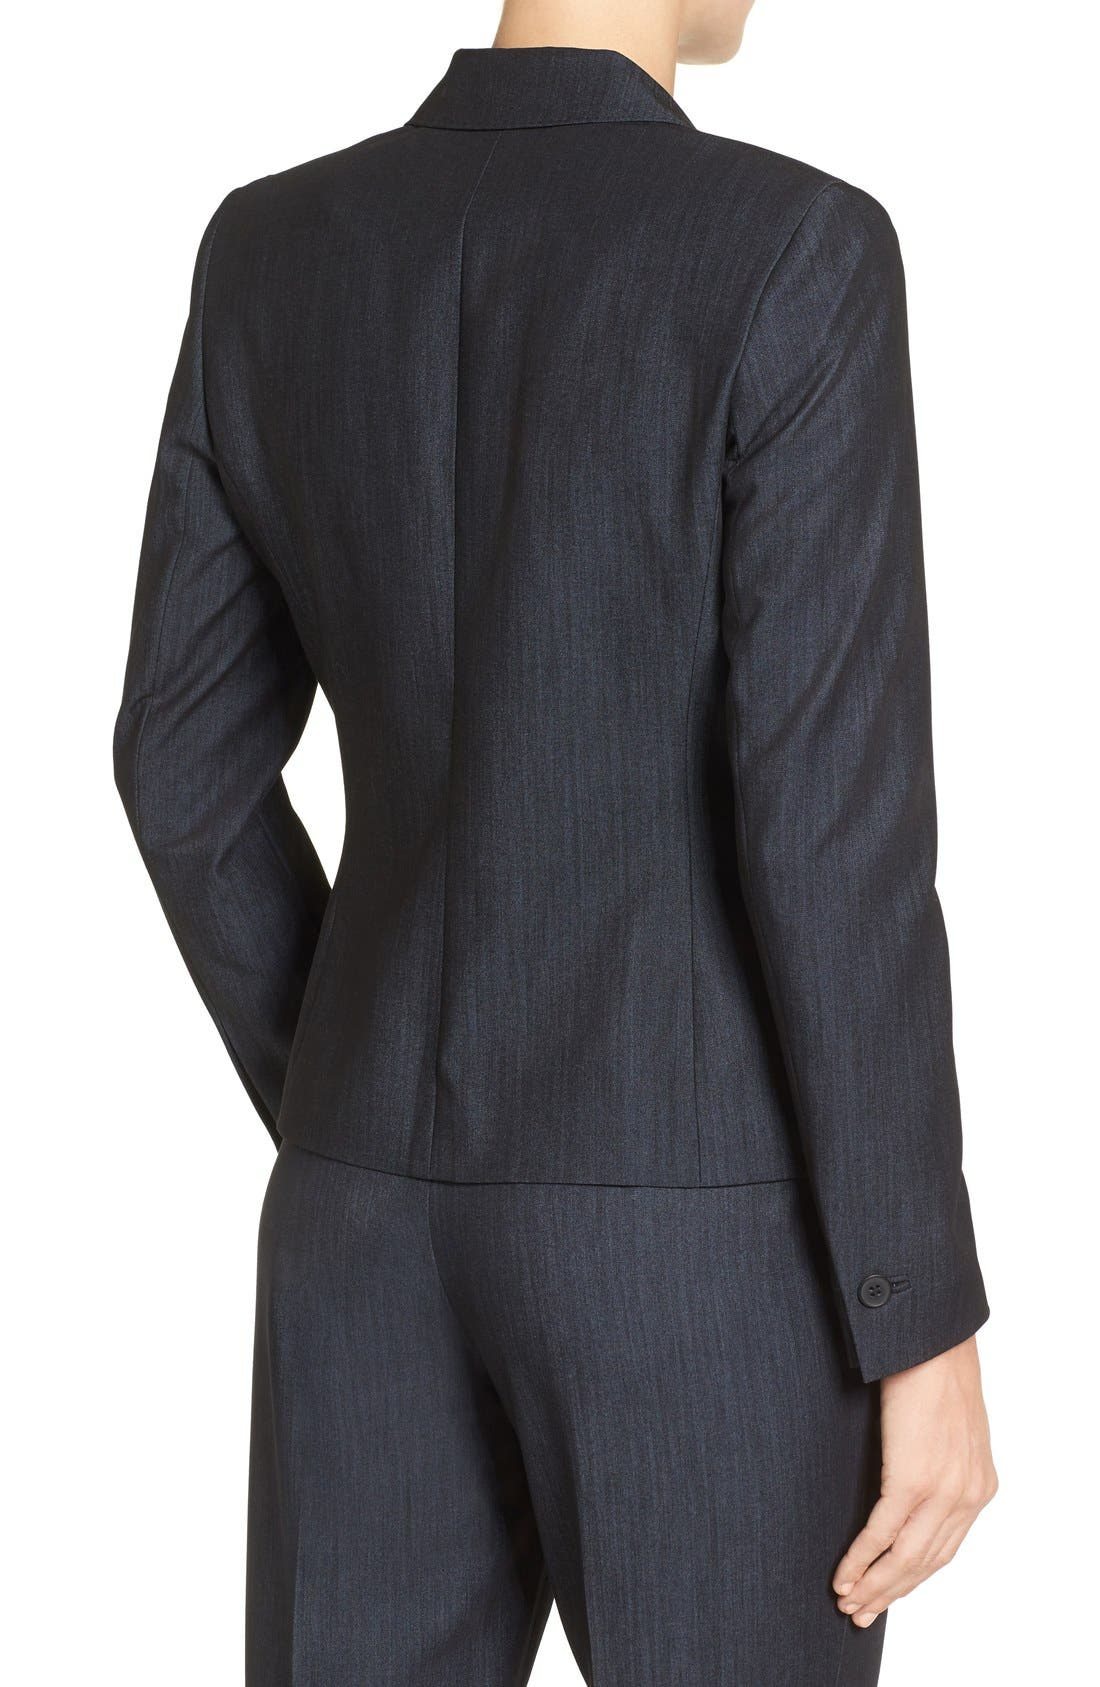 ANNE KLEIN, Twill One-Button Jacket, Alternate thumbnail 3, color, 400